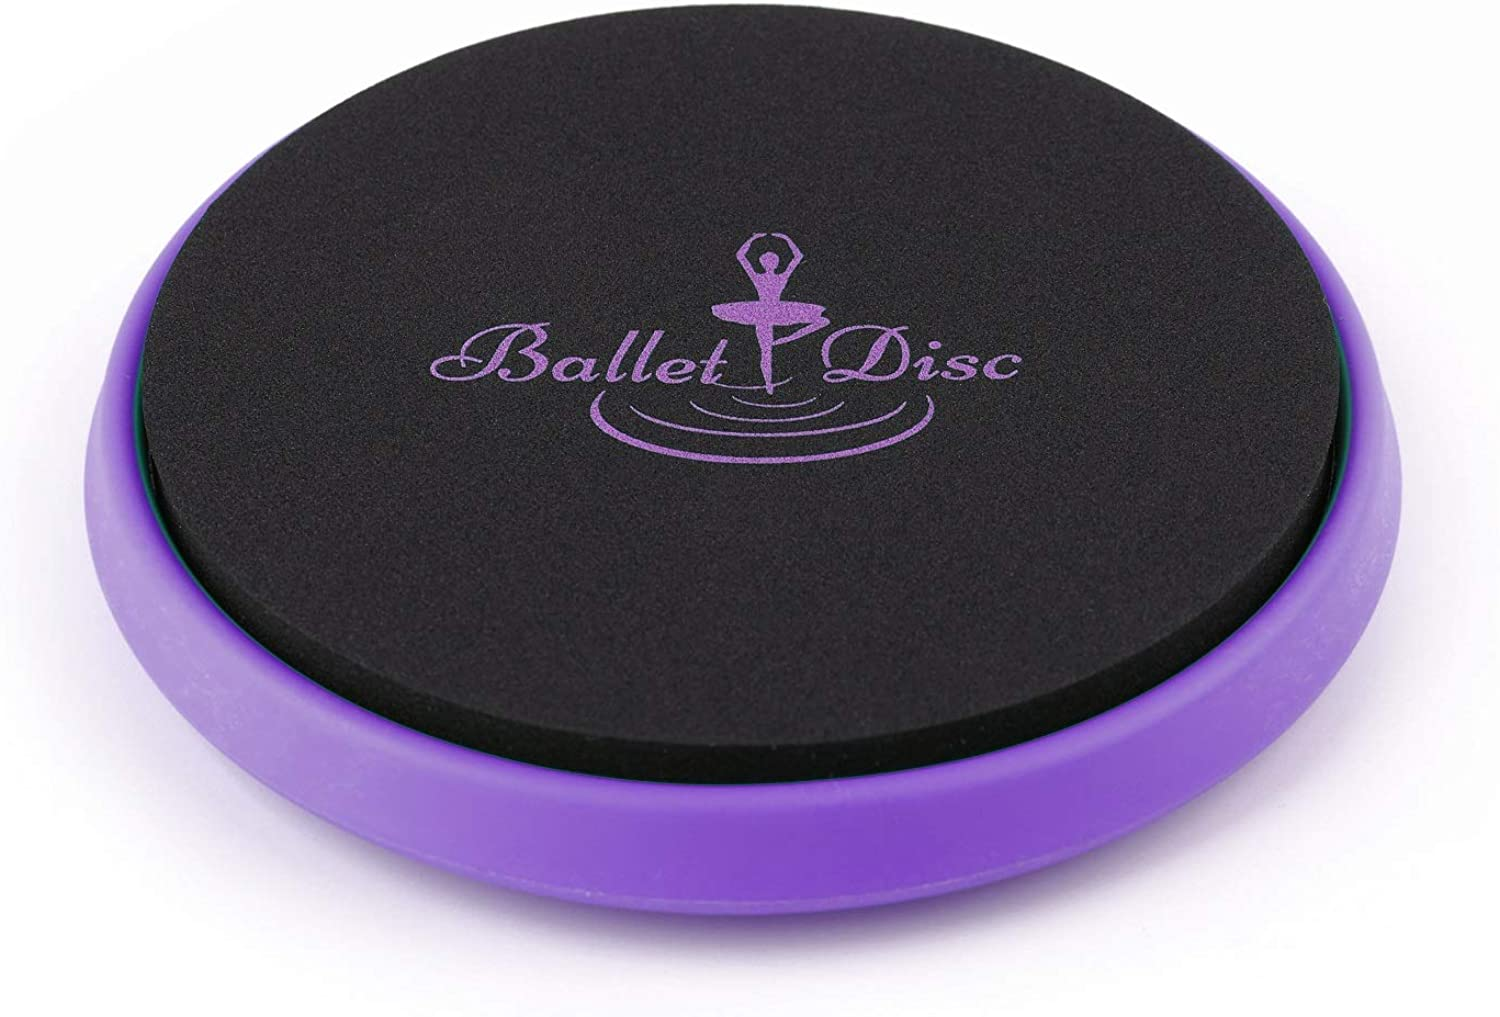 Weensmeil Pro Ballet Turning Disc for Dancers, Dance Disc - Balance Turn Board for Ballet, Gymnastics and Figure Skating, Spin Boards for Better Pirouette Technique, Releve, Turns and Dance Spinning